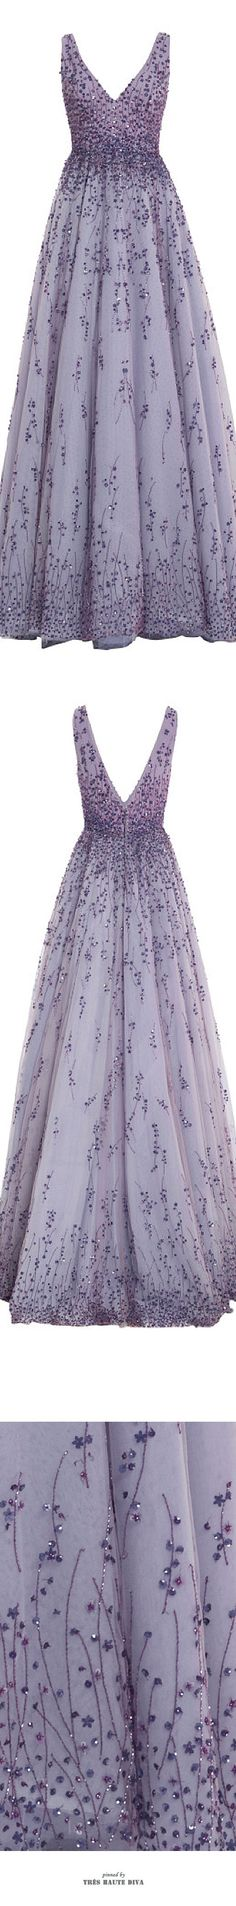 Monique Lhuillier Violet Embroidered Tulle V-Neck Ball Gown ♔ SS 2015 ♔ Très Haute Diva ♔